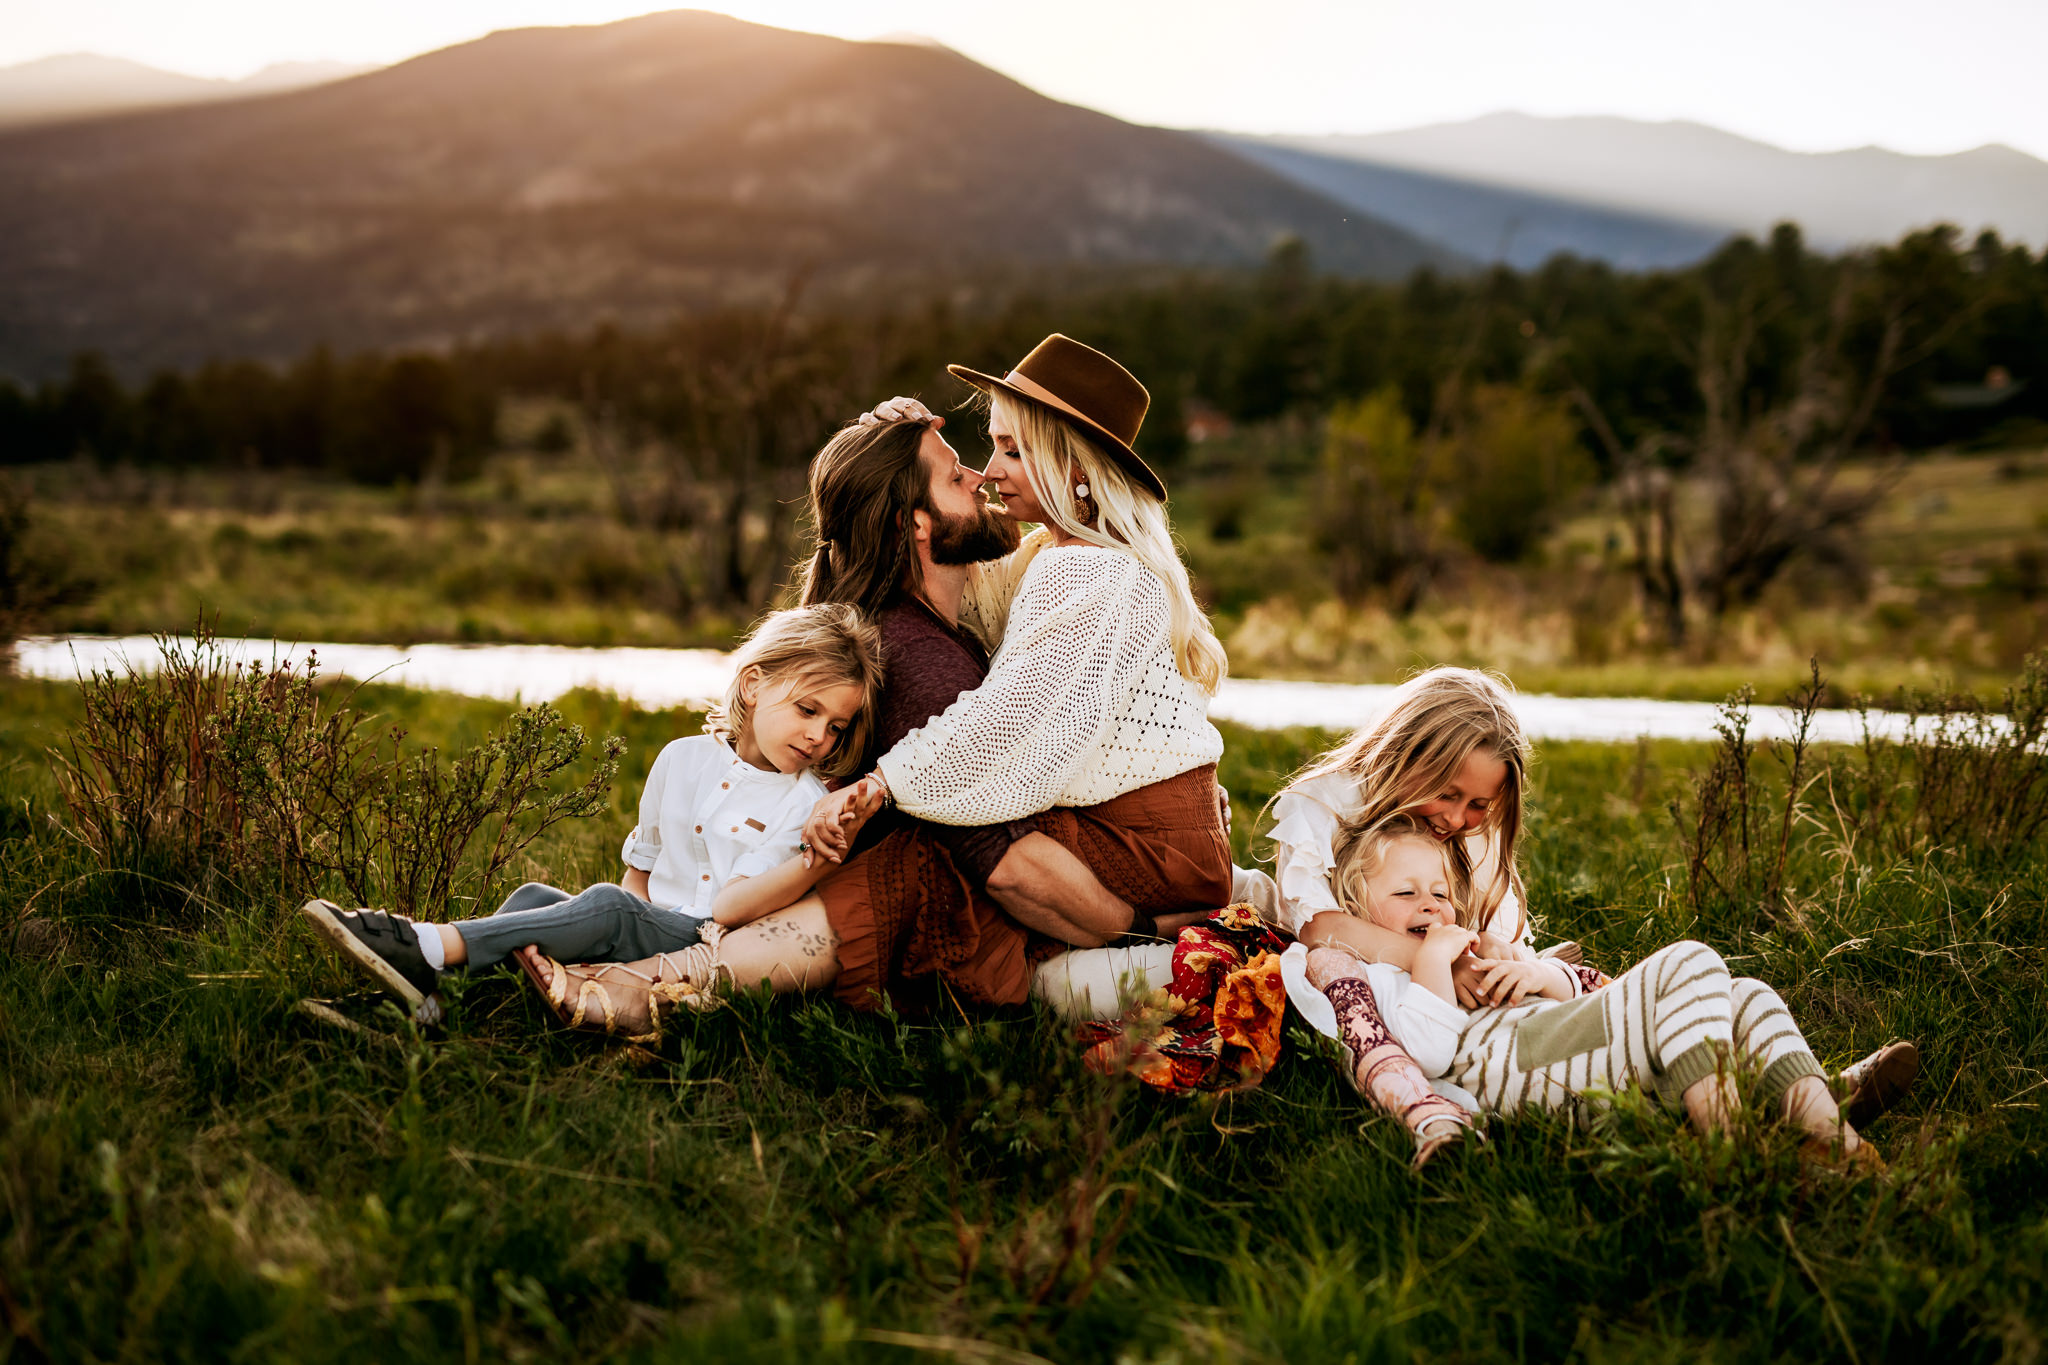 120 Inspiring Family Photo Ideas For Your Next Session